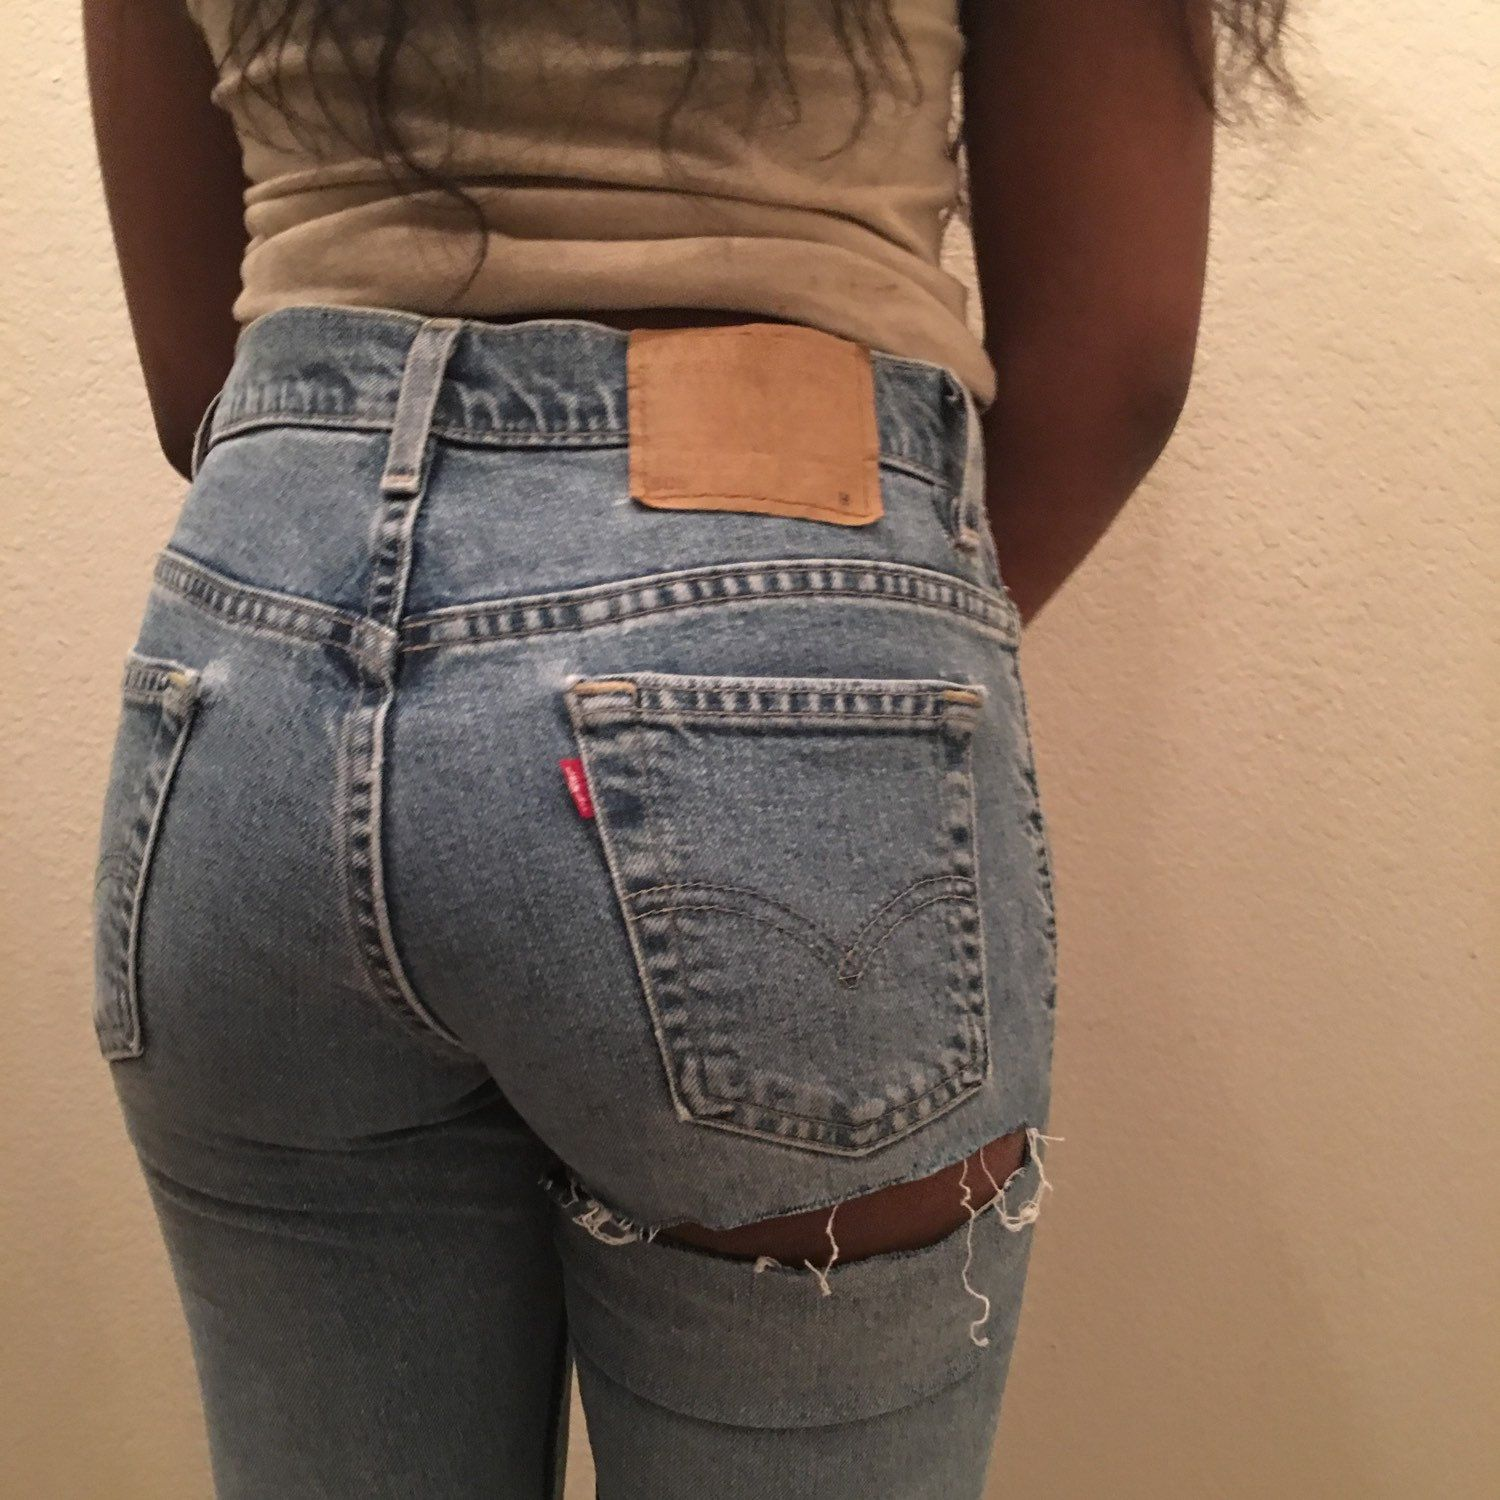 Hole in jeans porn